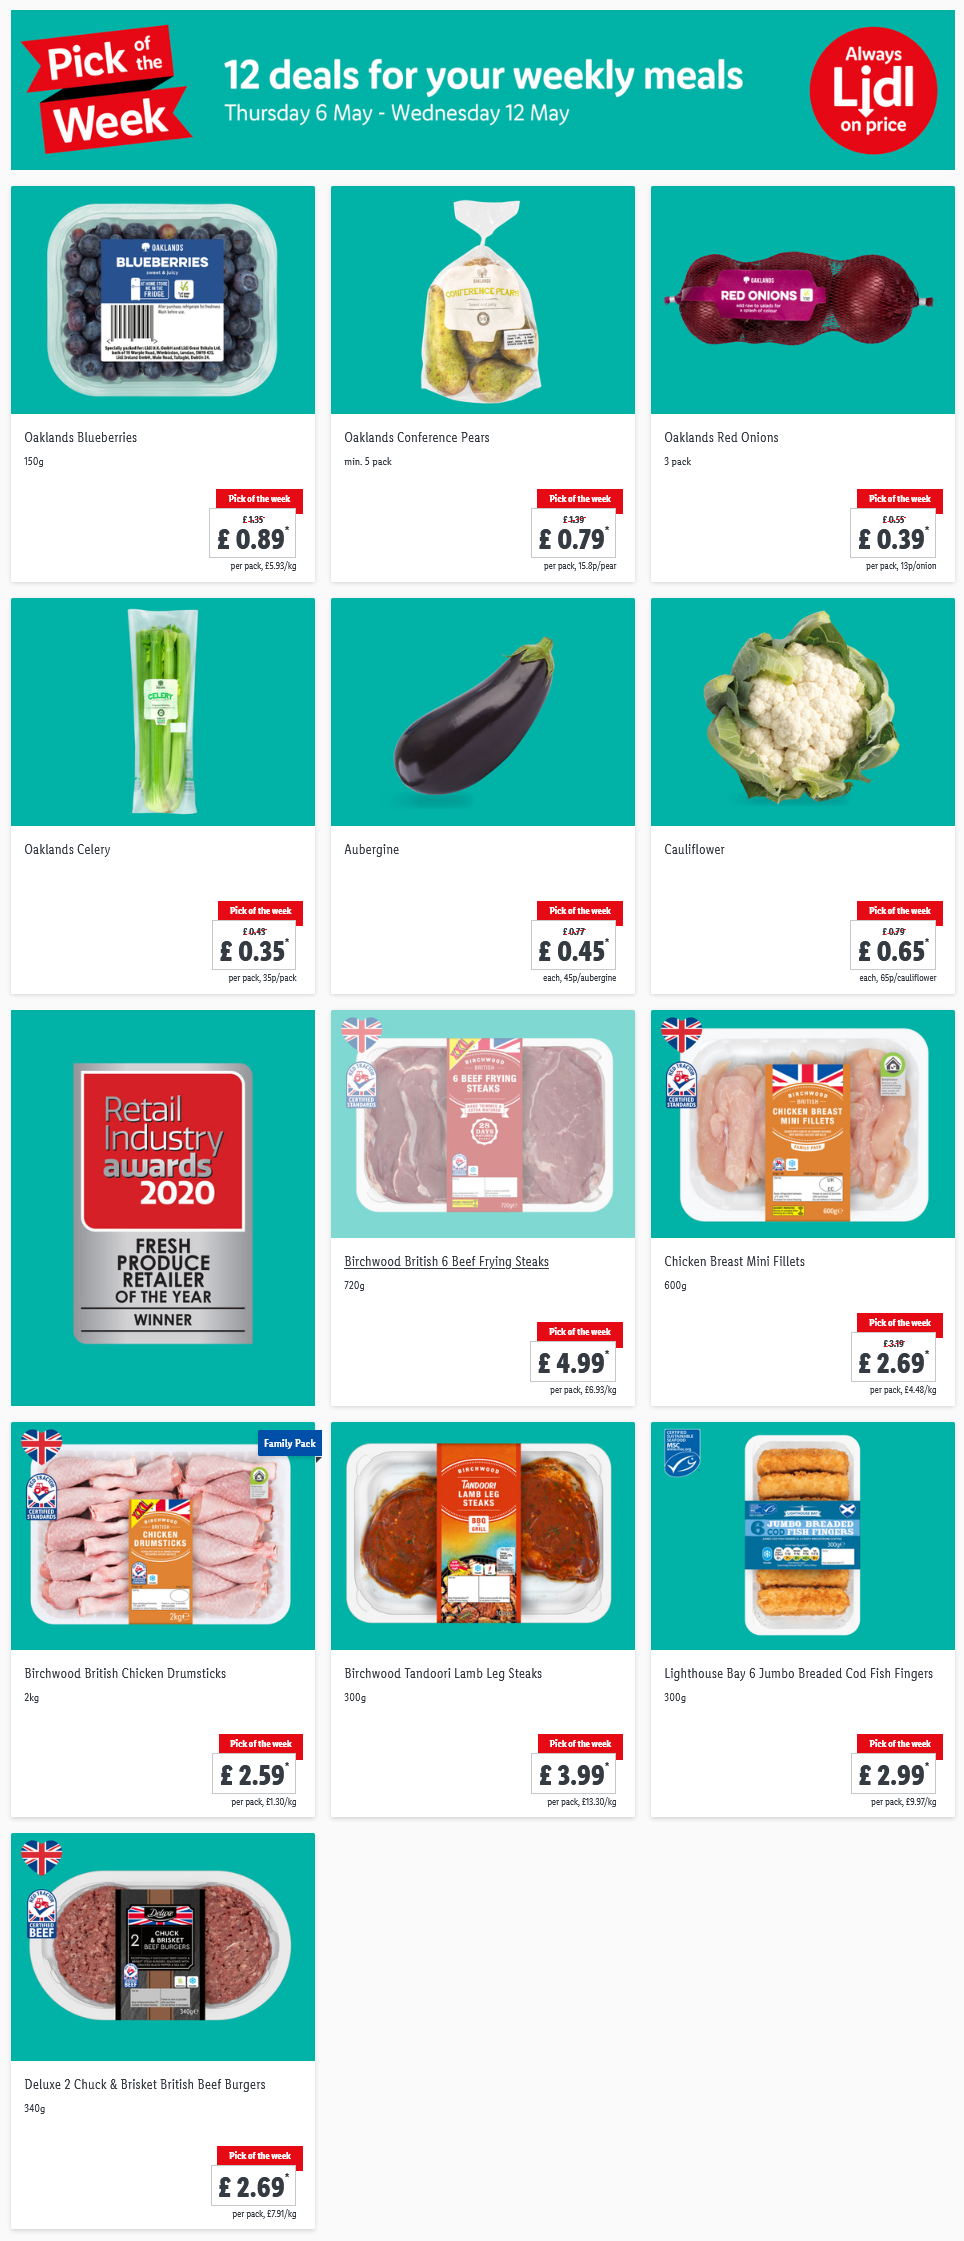 LIDL Pick of The Week 6th May - 12th May 2021 Next Week Preview